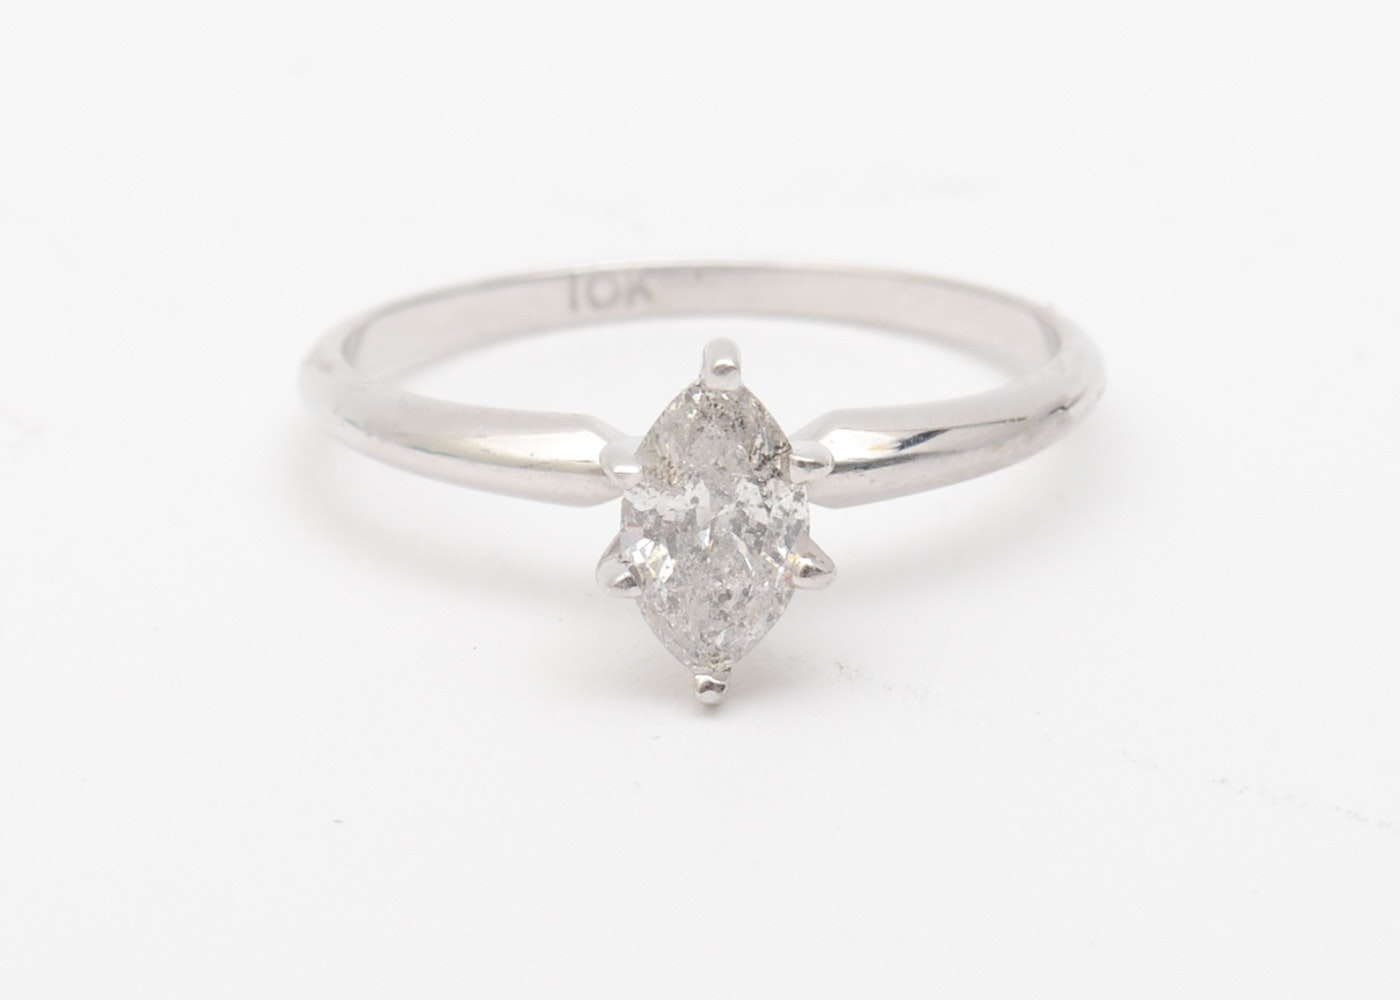 10K White Gold and Marquise Cut Diamond Solitaire Ring